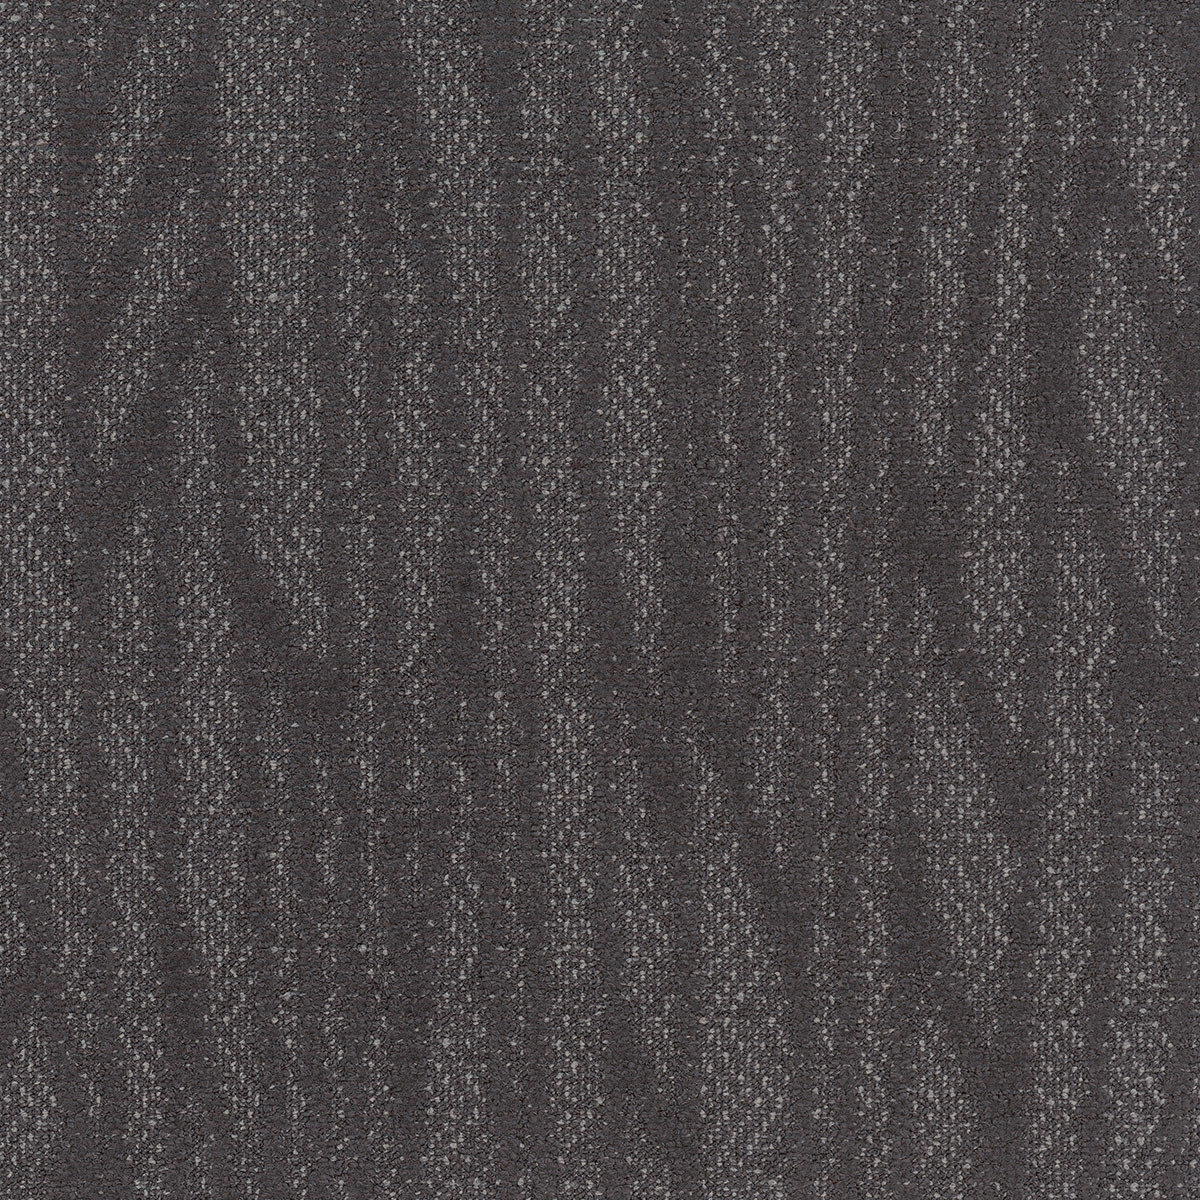 Amtico International: Cable Tweed